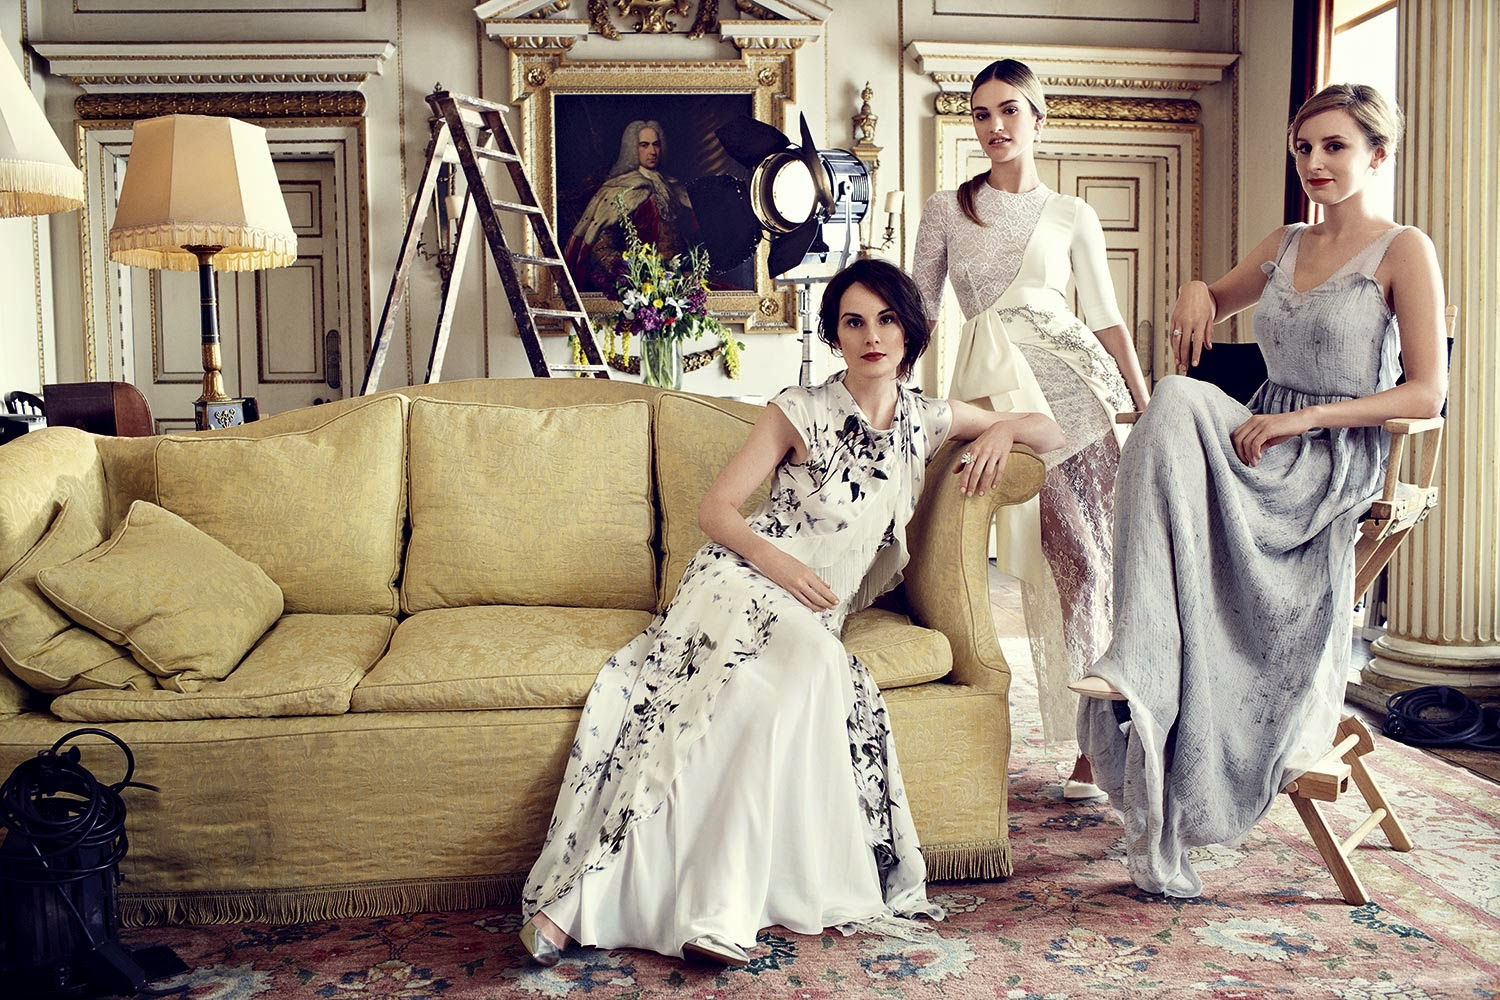 Downton Abbey in Harper's Bazaar